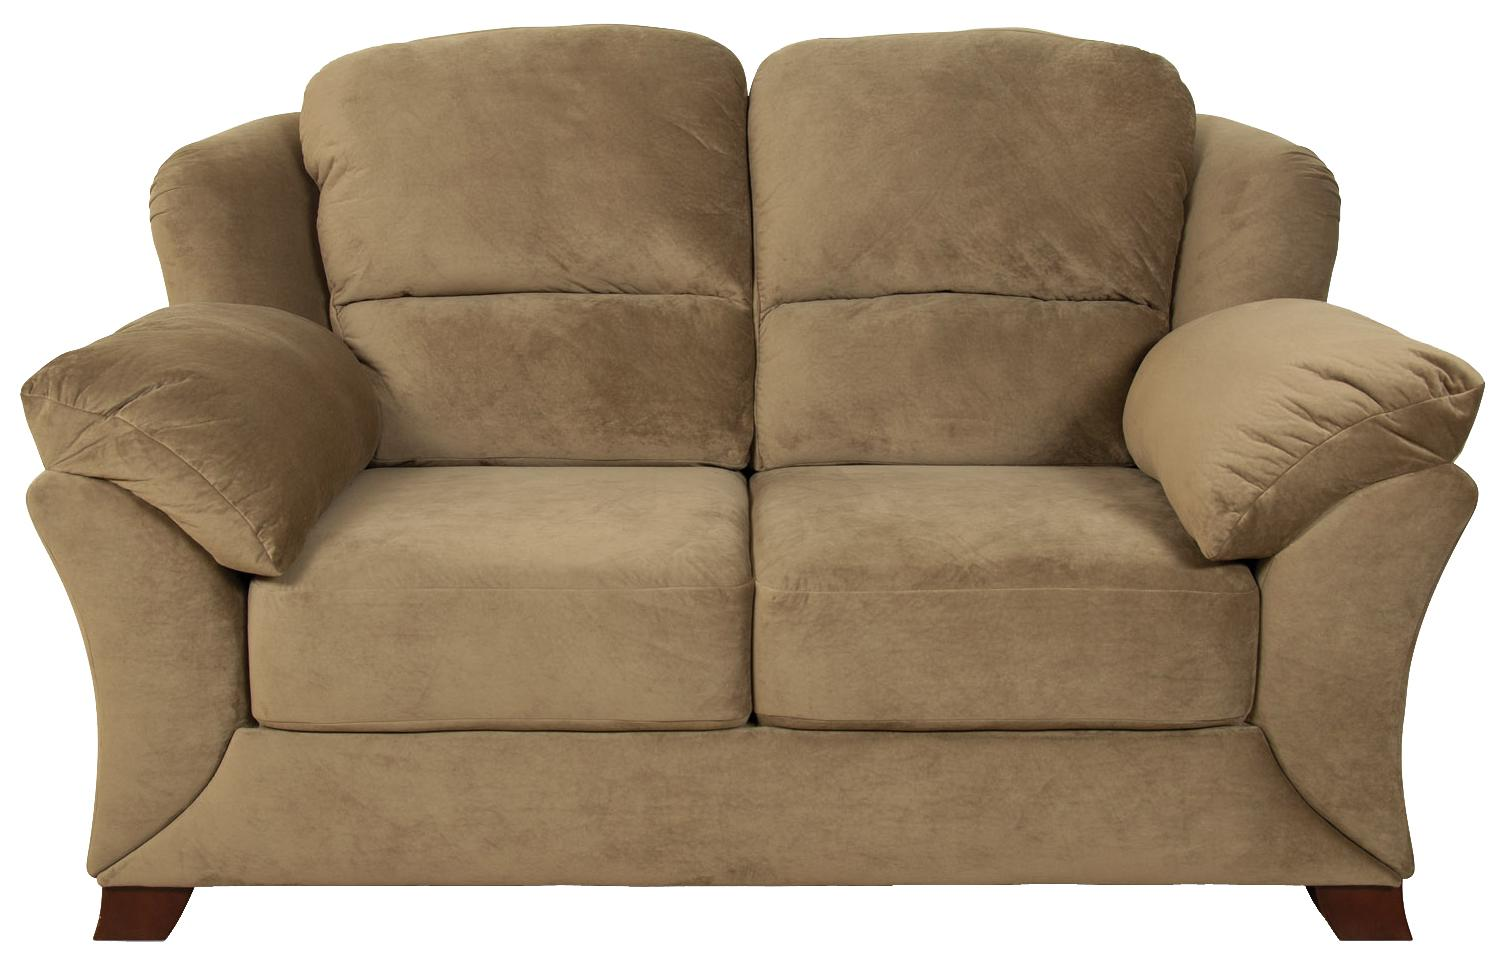 England Geoff  Loveseat - Item Number: 7036 F